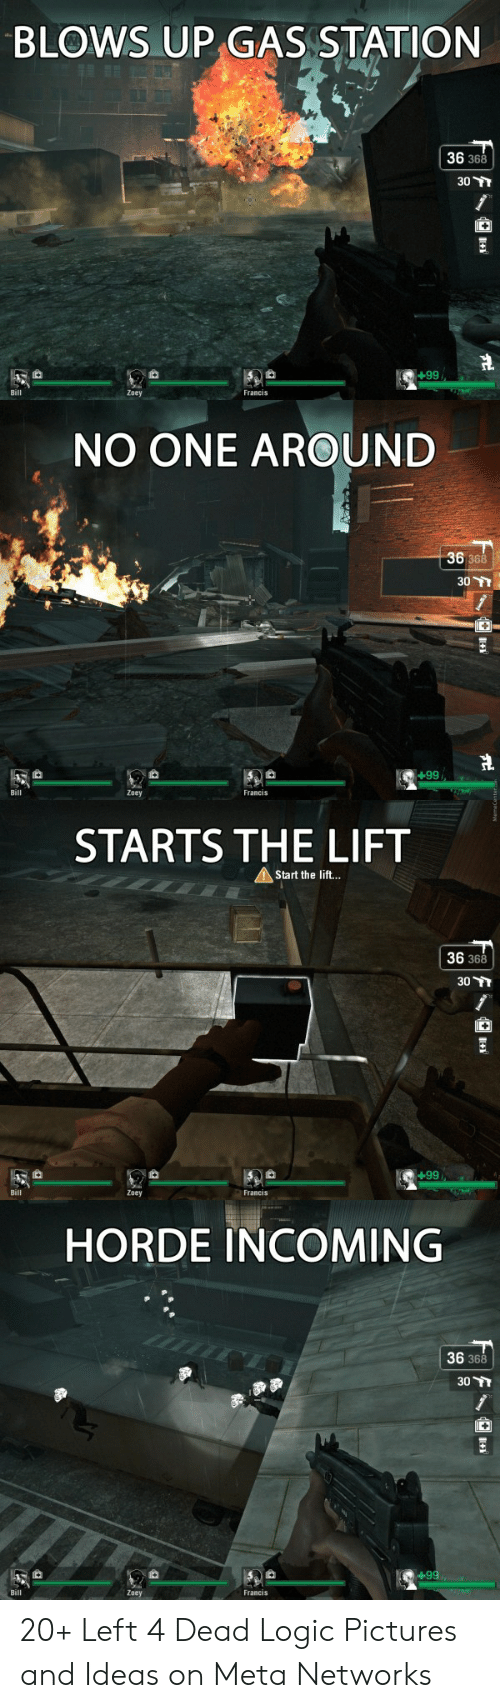 Dead Logic: BLOWS UP GAS STATION  36 368  30  66+  Zoey  NO ONE AROUND  36  368  30  +99  Zoey  STARTS THE LIFT  AStart the lif...  36 368  30 TT  +99  HORDE INCOMING  36 368  30 Y  66+i  Francis 20+ Left 4 Dead Logic Pictures and Ideas on Meta Networks